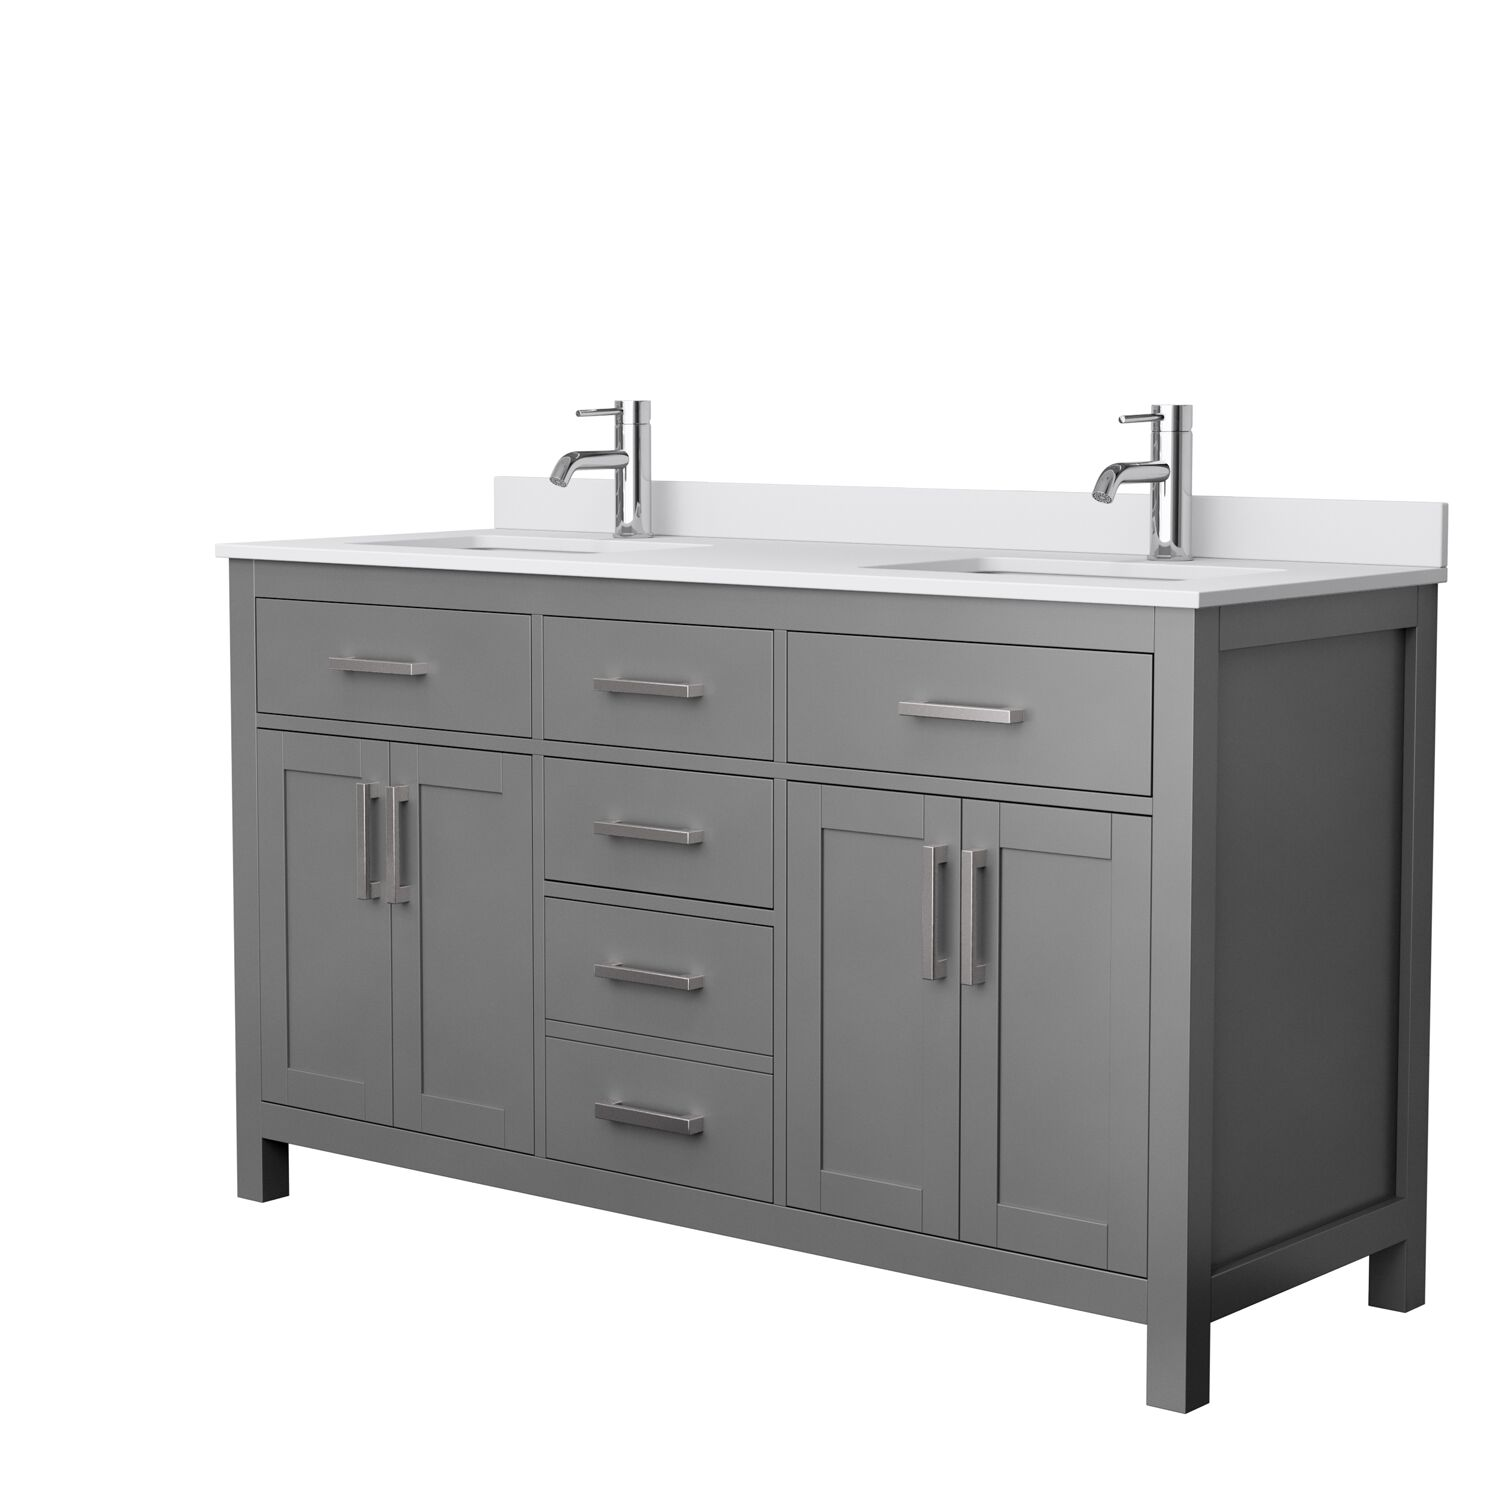 "60"" Double Bathroom Vanity in Dark Gray, White Cultured Marble Countertop, Undermount Square Sinks, No Mirror"